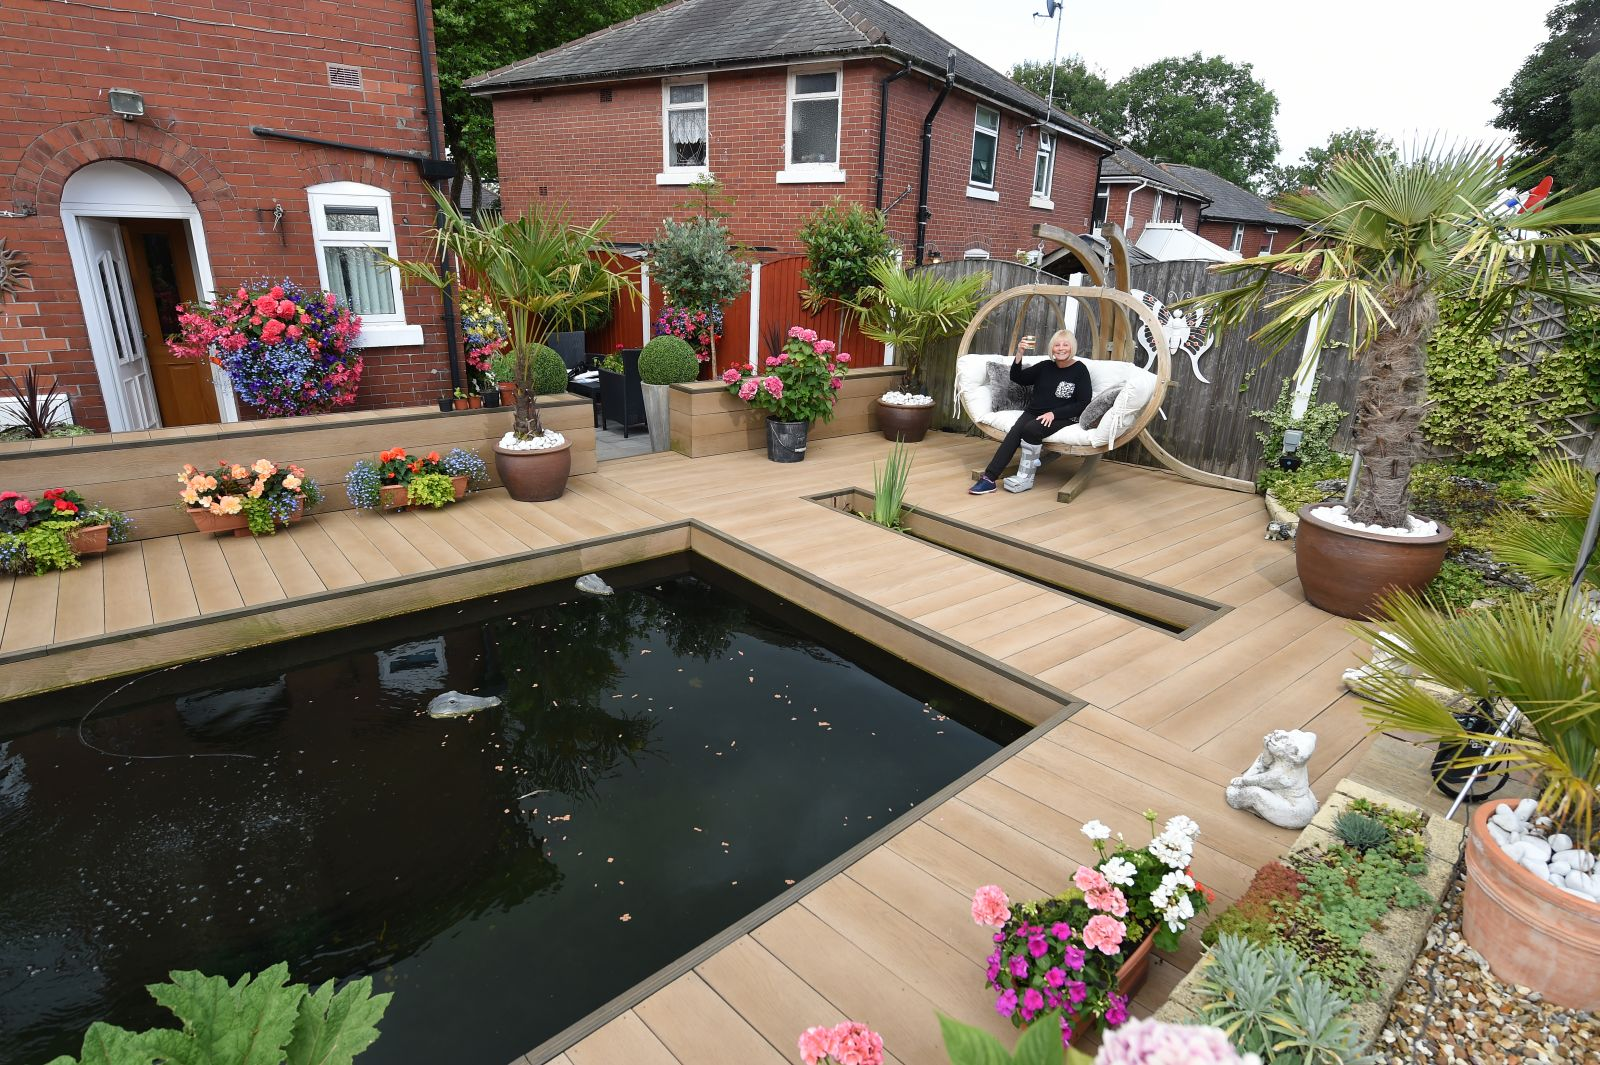 Six Town Housing's gardening competiton received a record 232 entries